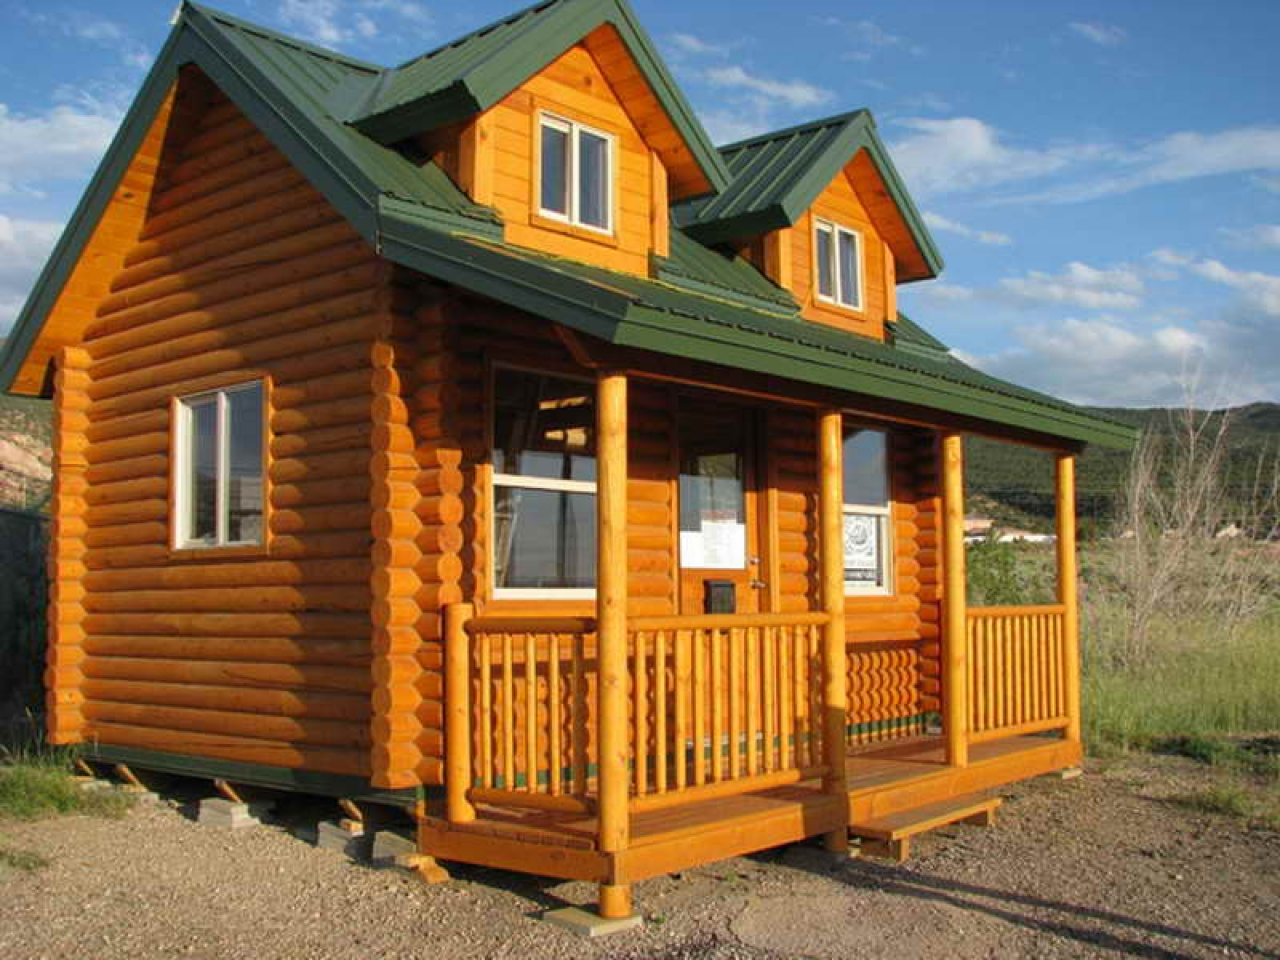 Small Log Cabin Kit Homes Small Log Cabin Floor Plans: Log Cabin Kits 50% Off Small Log Cabin Kit Homes, Build